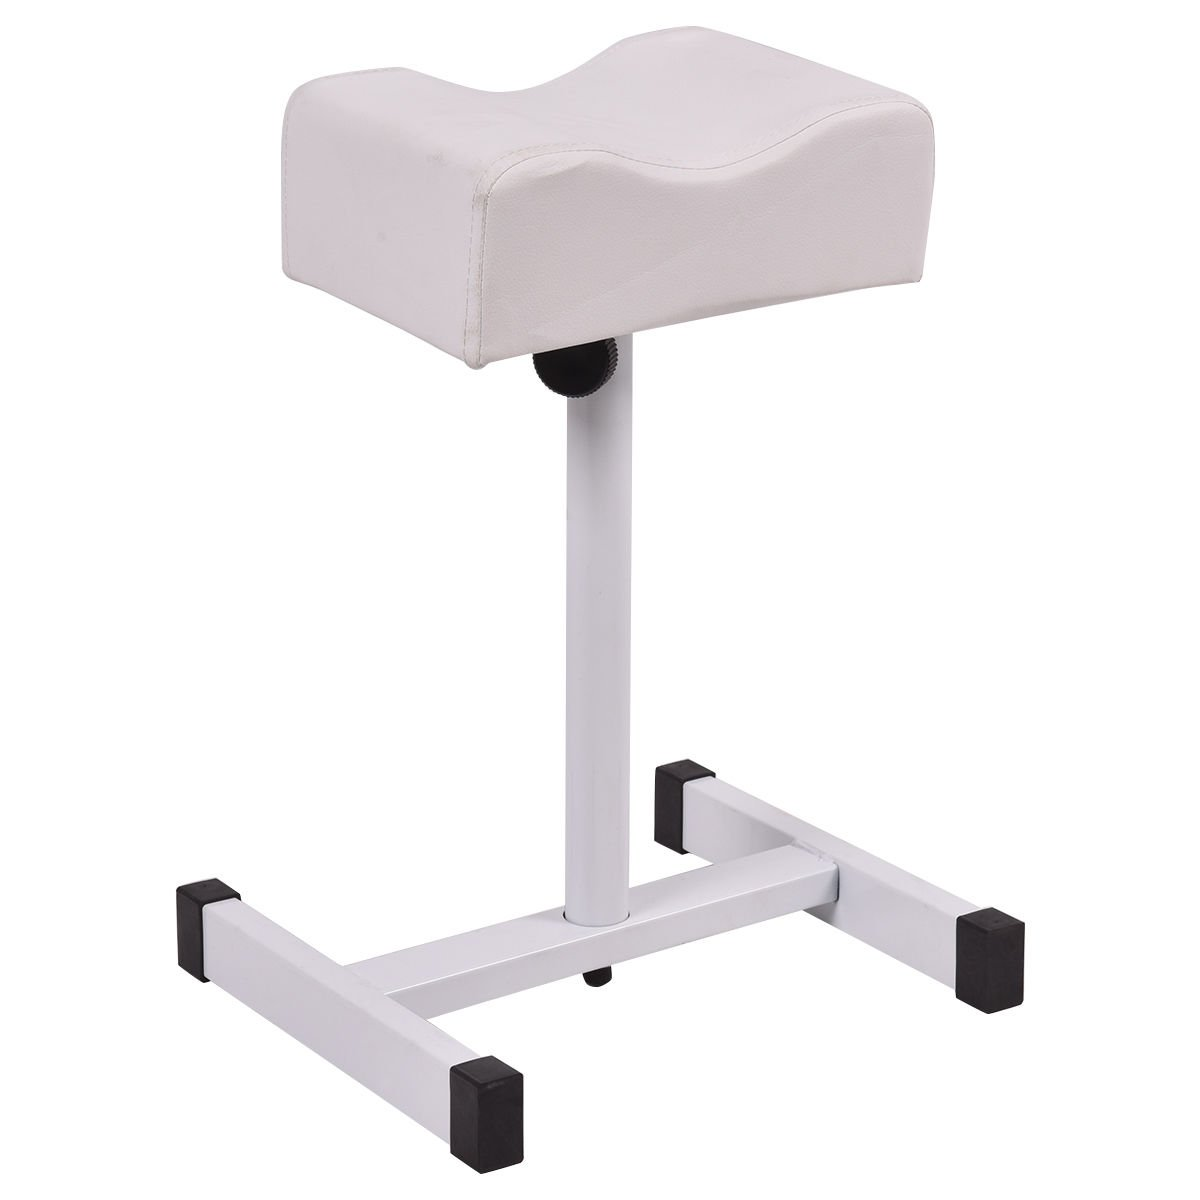 Simply Silver - Adjustable Pedicure - White Adjustable Pedicure Manicure Technician Nail Footrest Salon Spa Equipment by Simply Silver (Image #2)